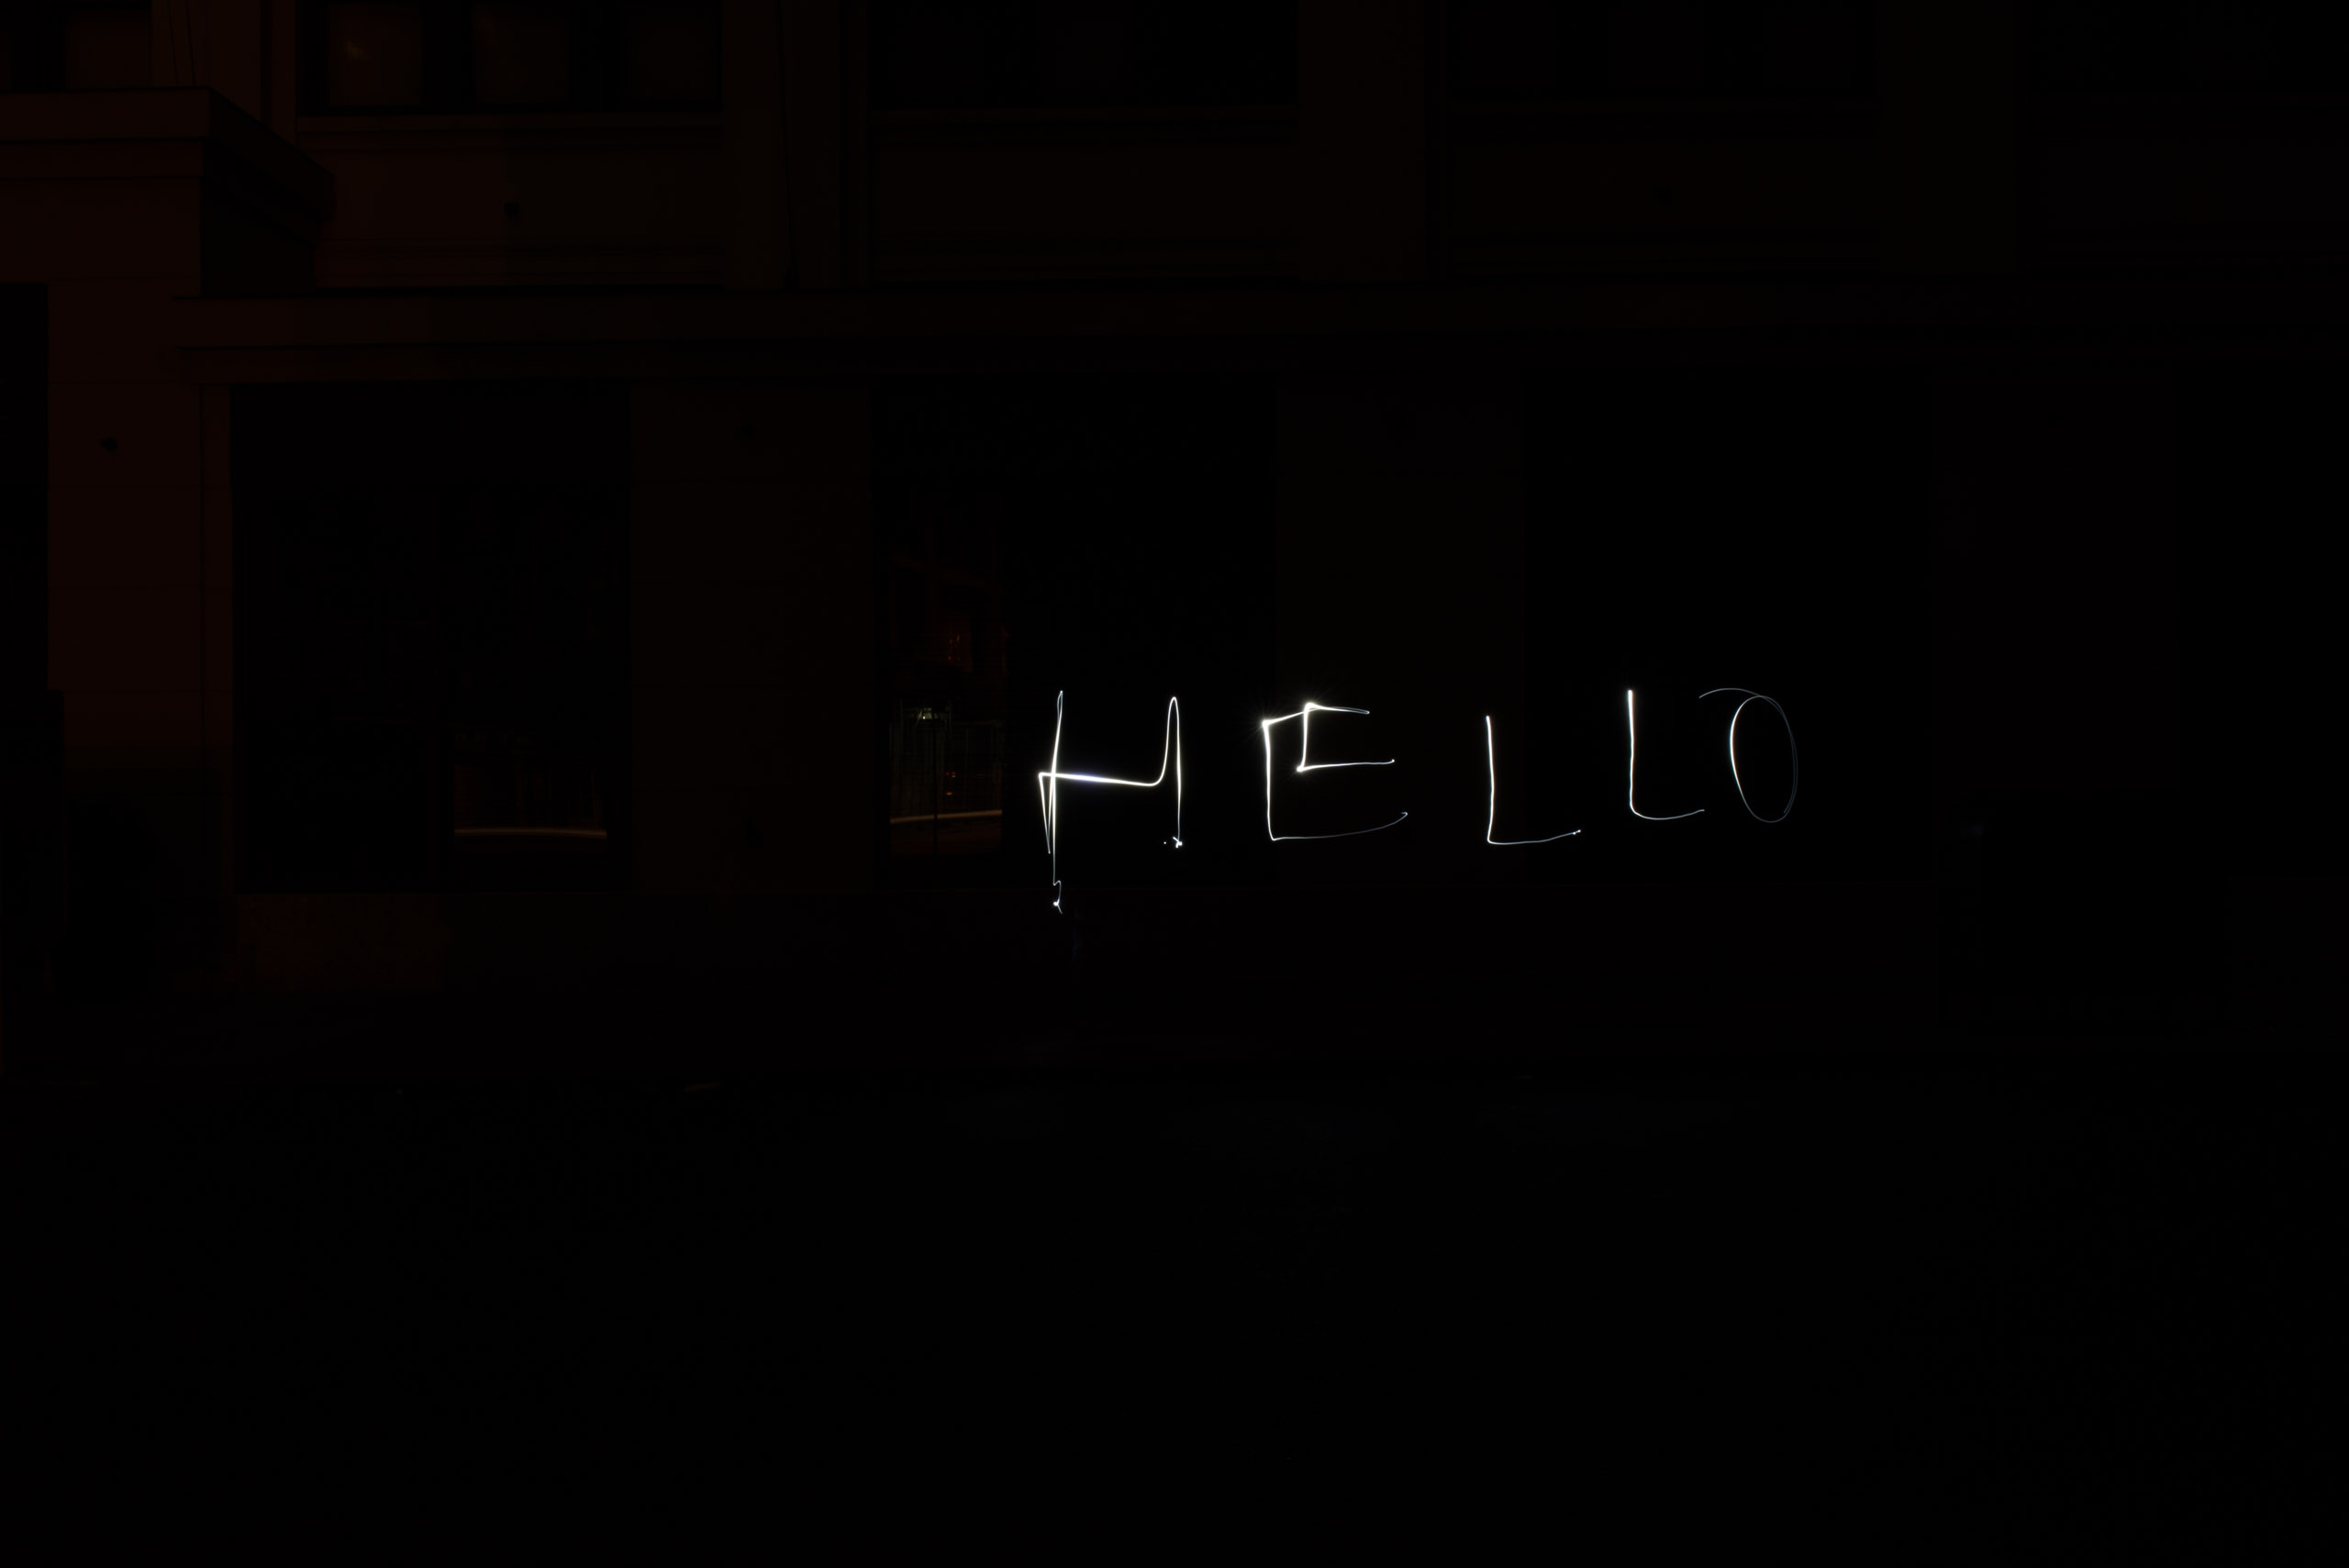 An Attempt at Light Writing